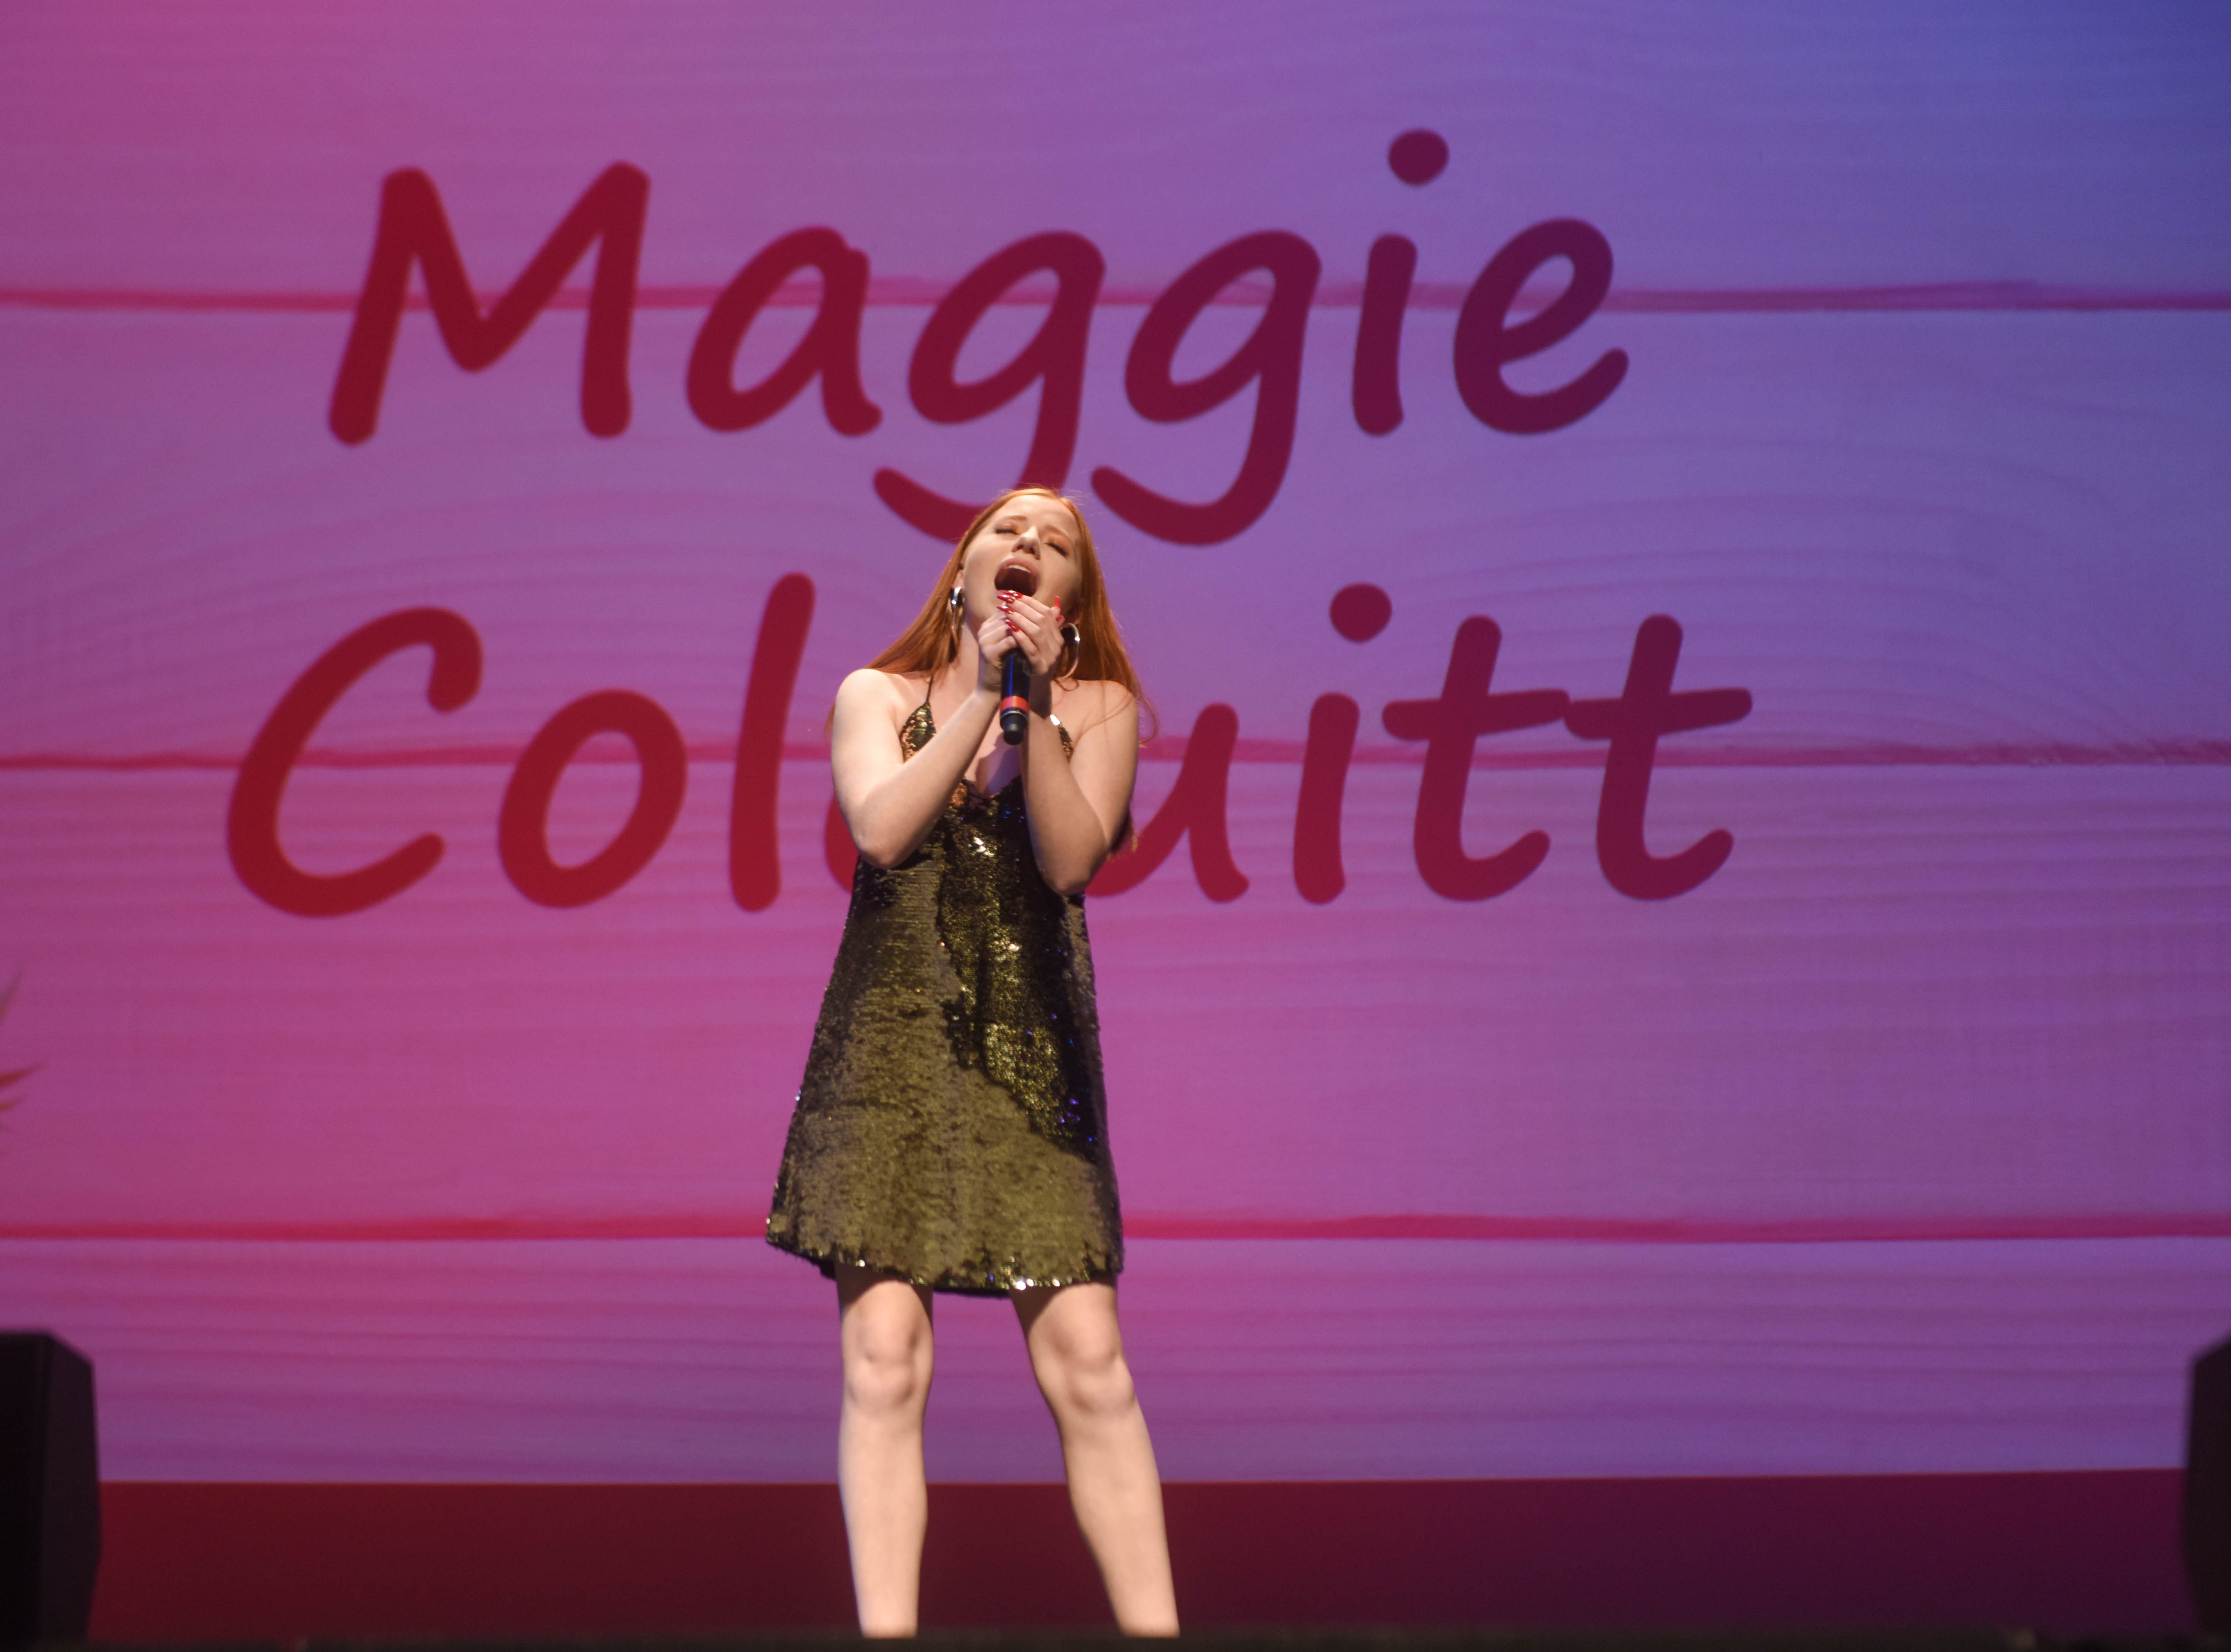 Maggie Colquitt. The 2019 Englewood Idol was held at bergenPAC theater. The singing competition is open to any high school student who currently lives or goes to school in Englewood, NJ. This years winner was Genesis Capellan. 01/11/2019